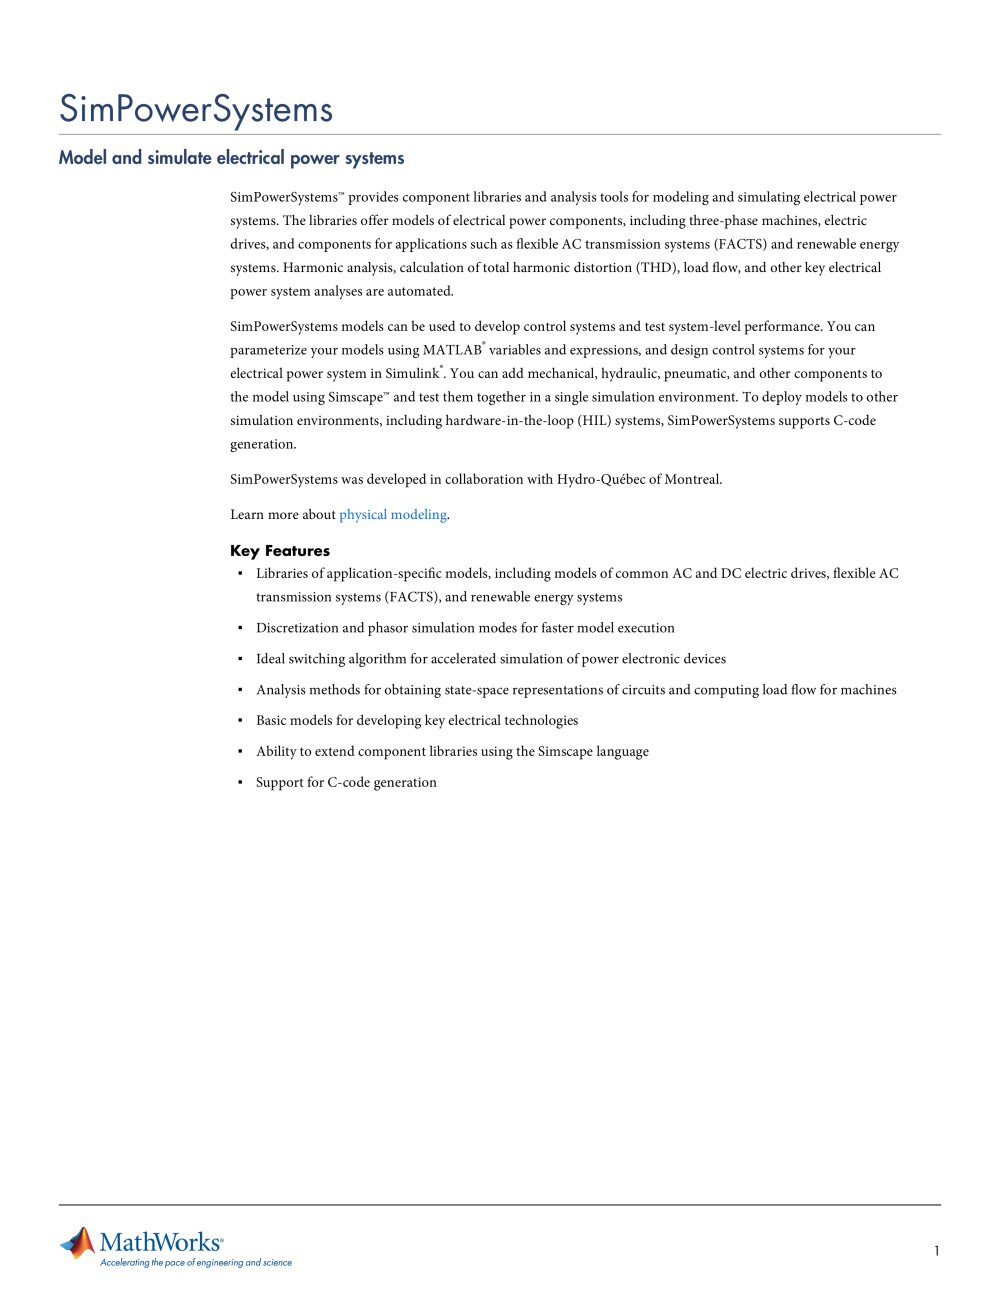 SimPowerSystems - The MathWorks - PDF Catalogue | Technical ...